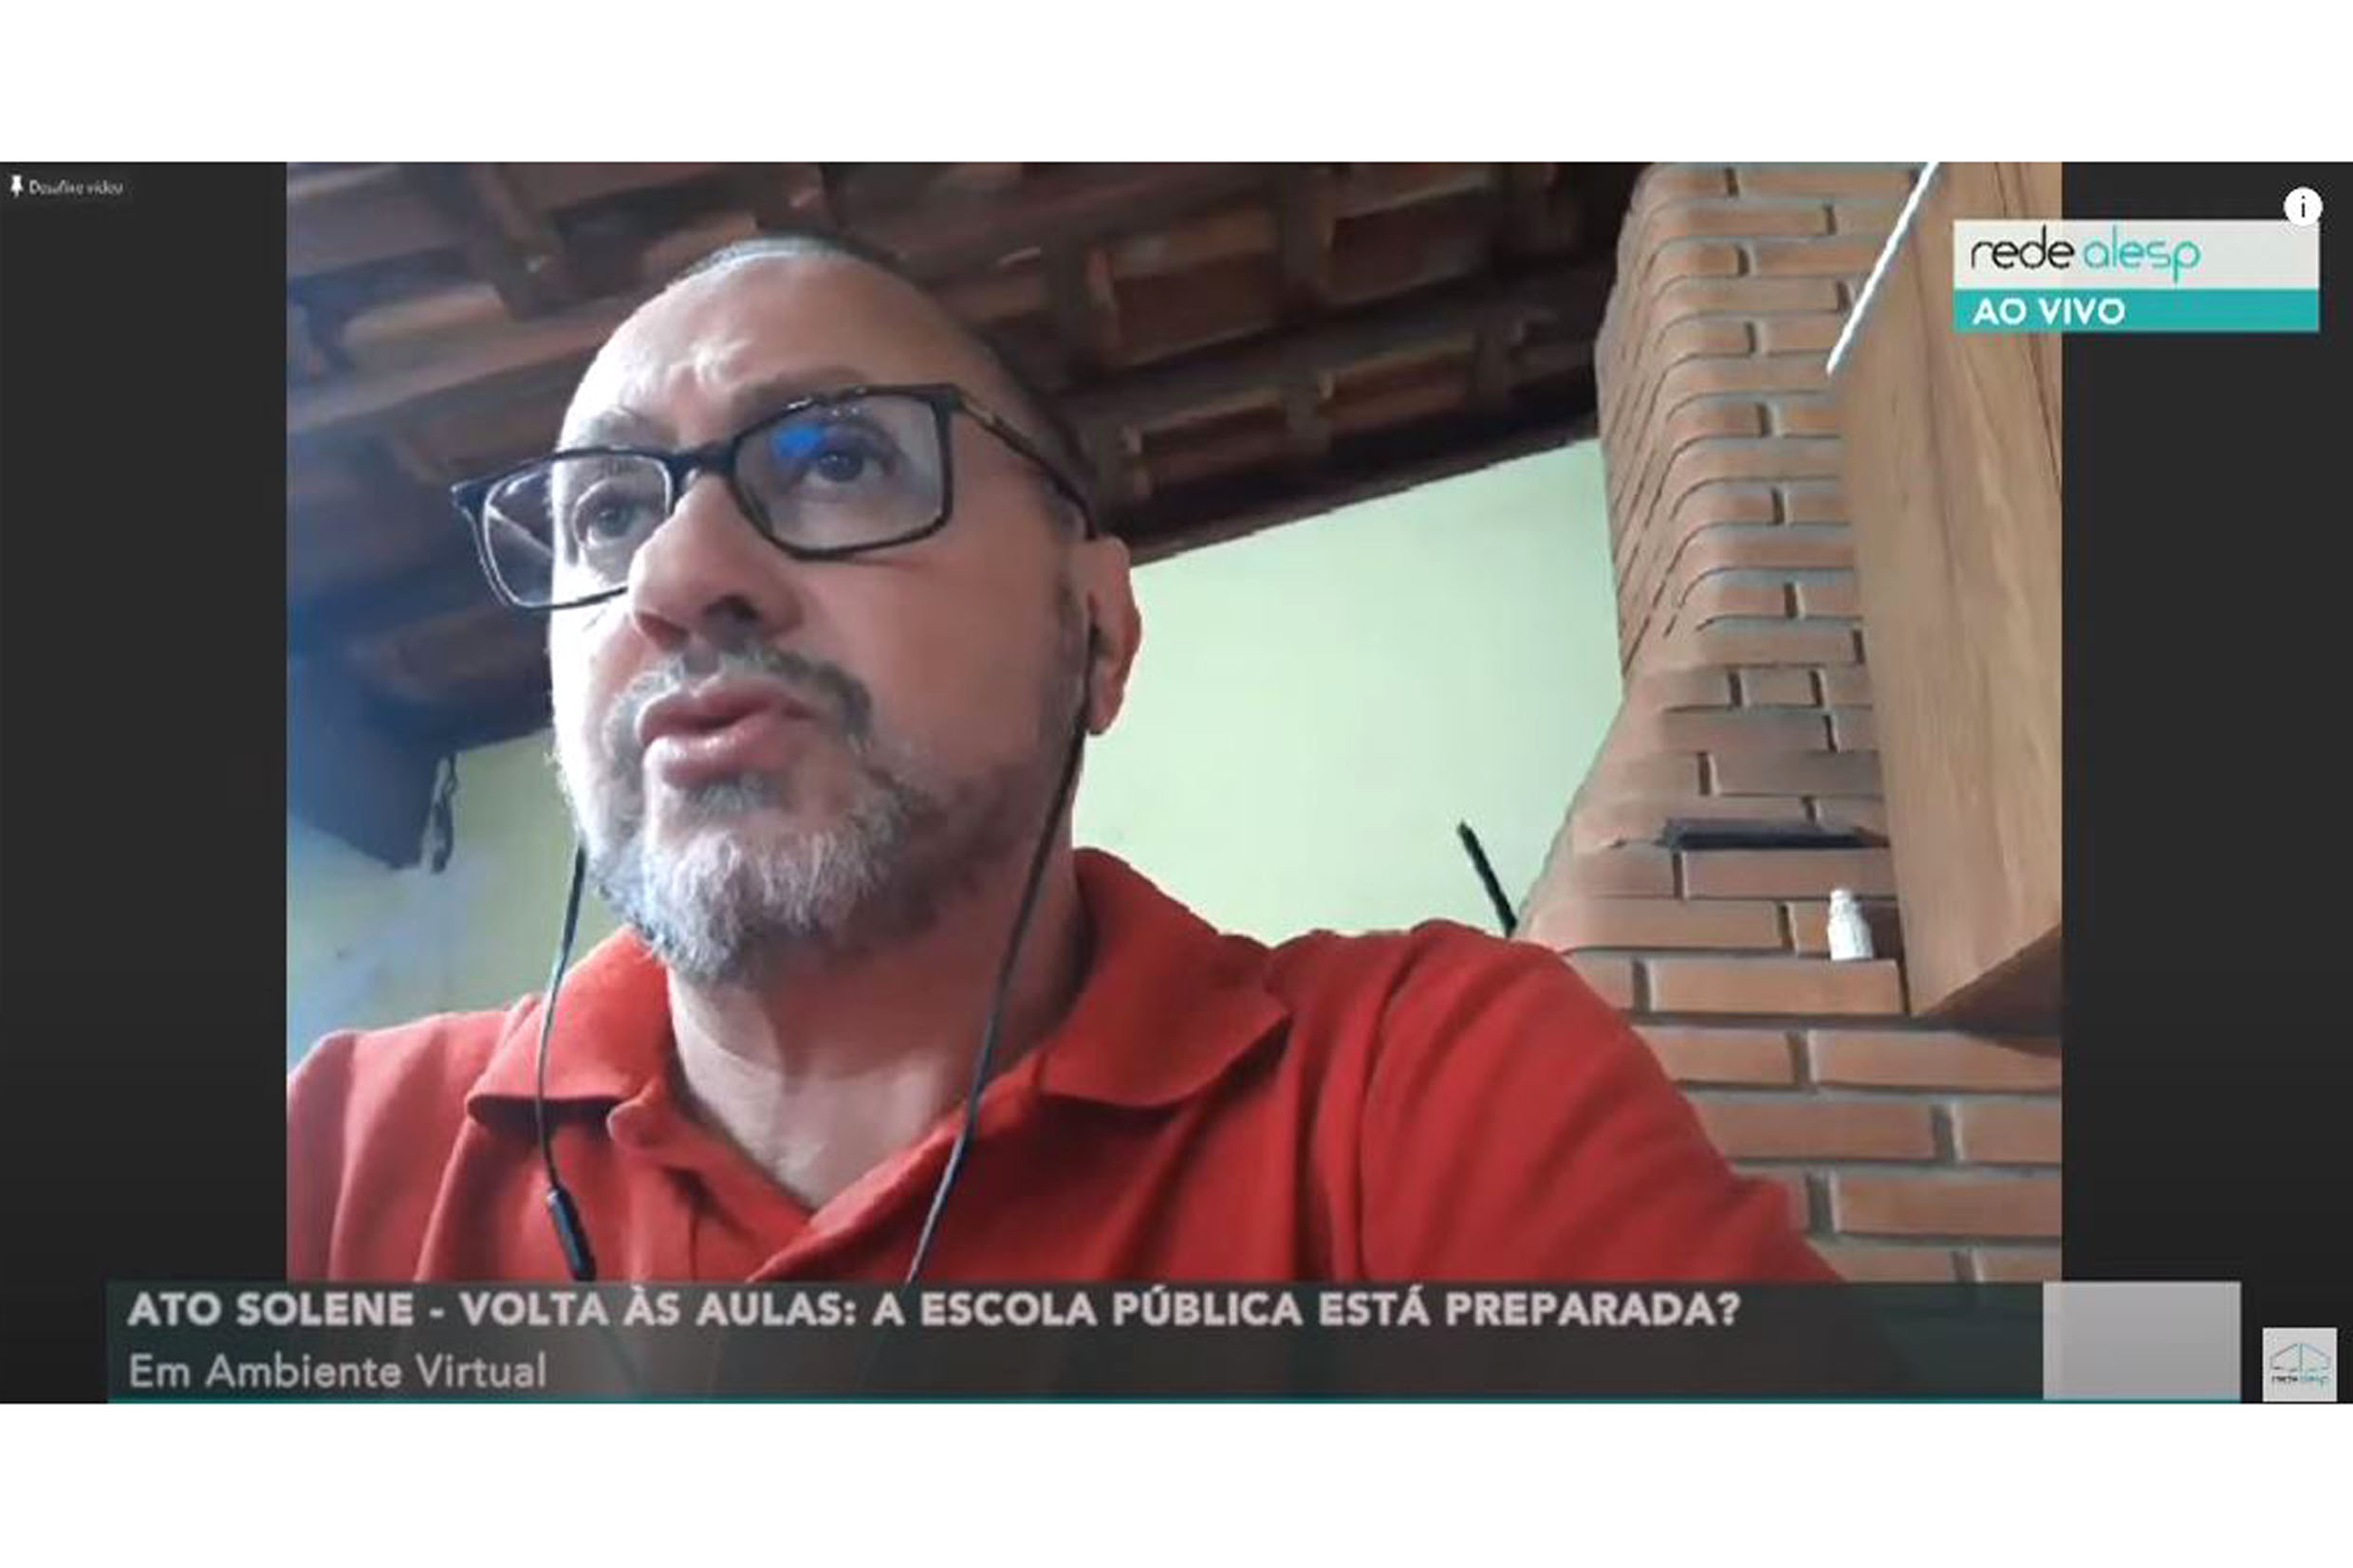 Douglas Martins Izzo<a style='float:right' href='https://www3.al.sp.gov.br/repositorio/noticia/N-07-2020/fg251937.jpg' target=_blank><img src='/_img/material-file-download-white.png' width='14px' alt='Clique para baixar a imagem'></a>